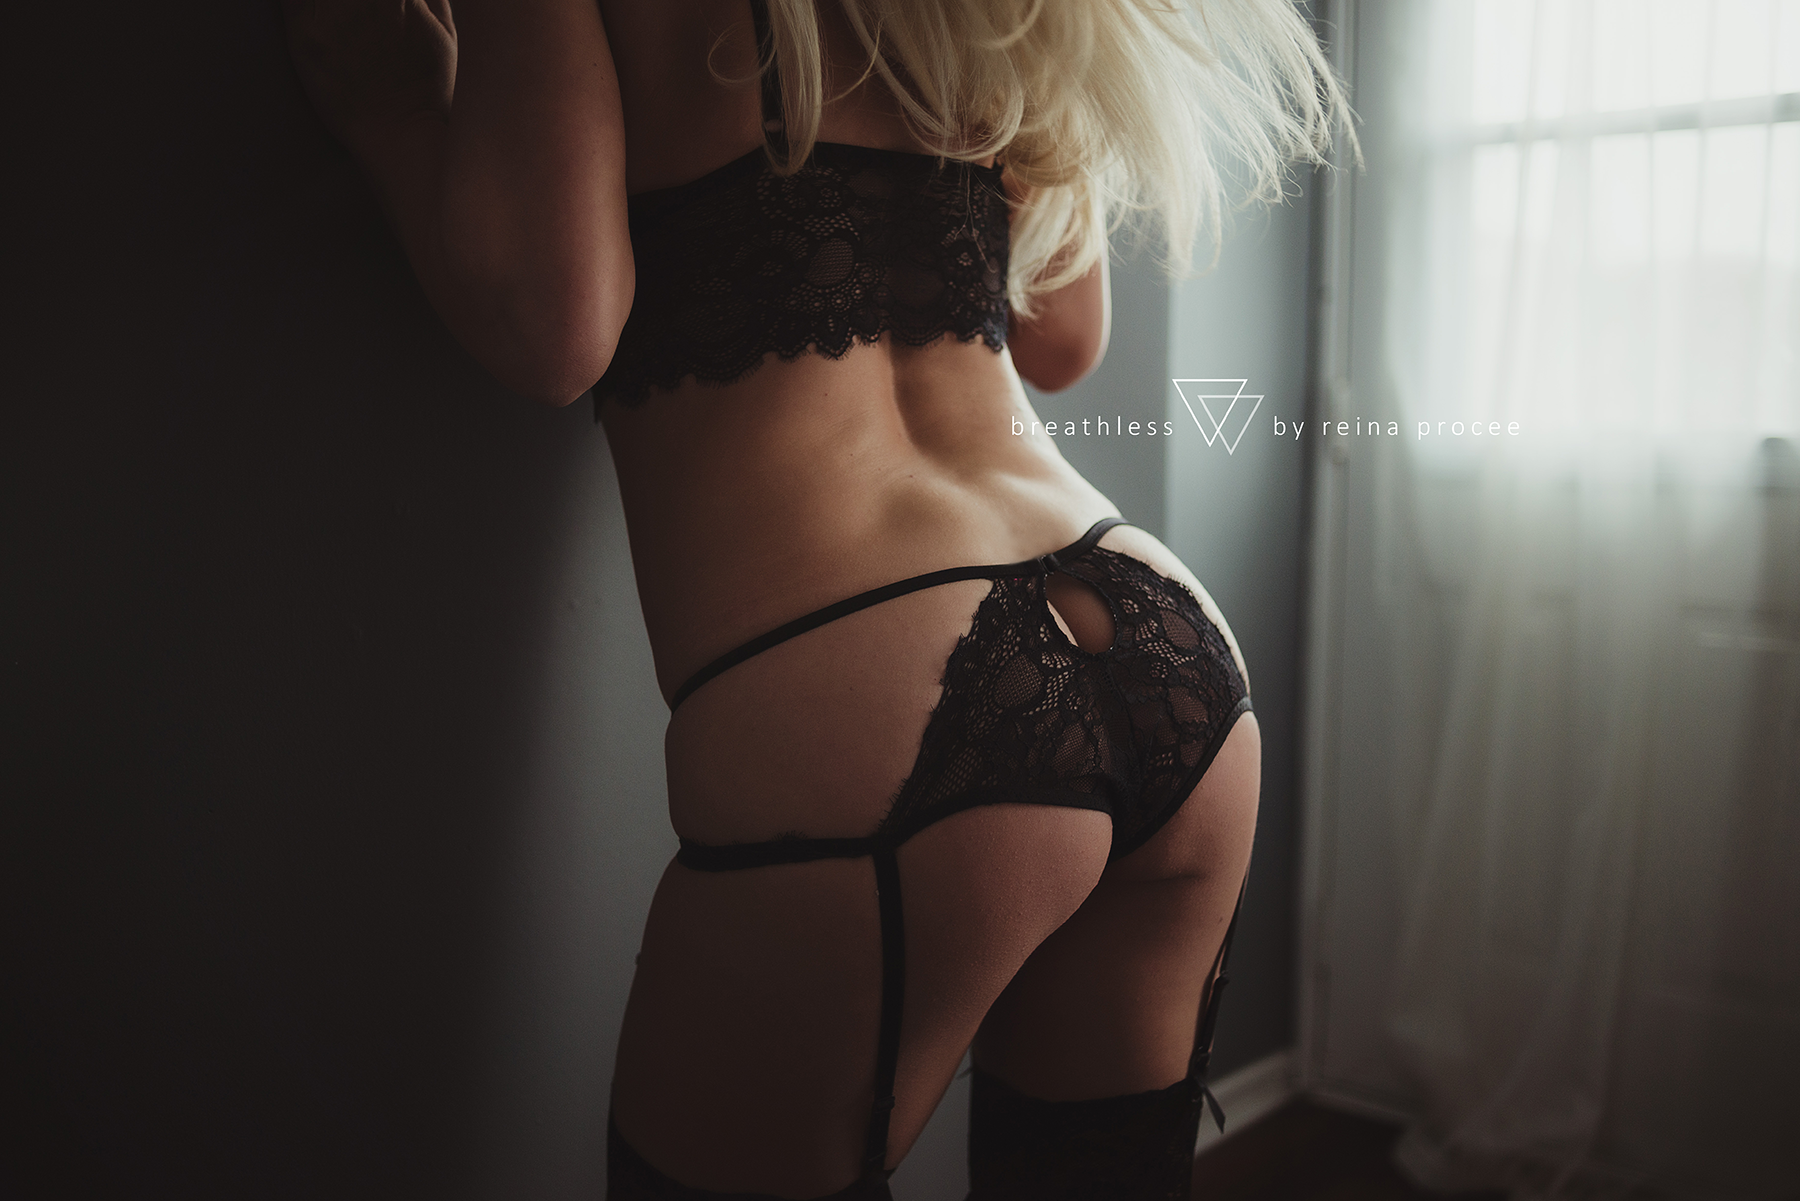 montreal-boudoir-beauty-exotic-empower-women-ladies-comfort-progress-photography-photographer-6.png